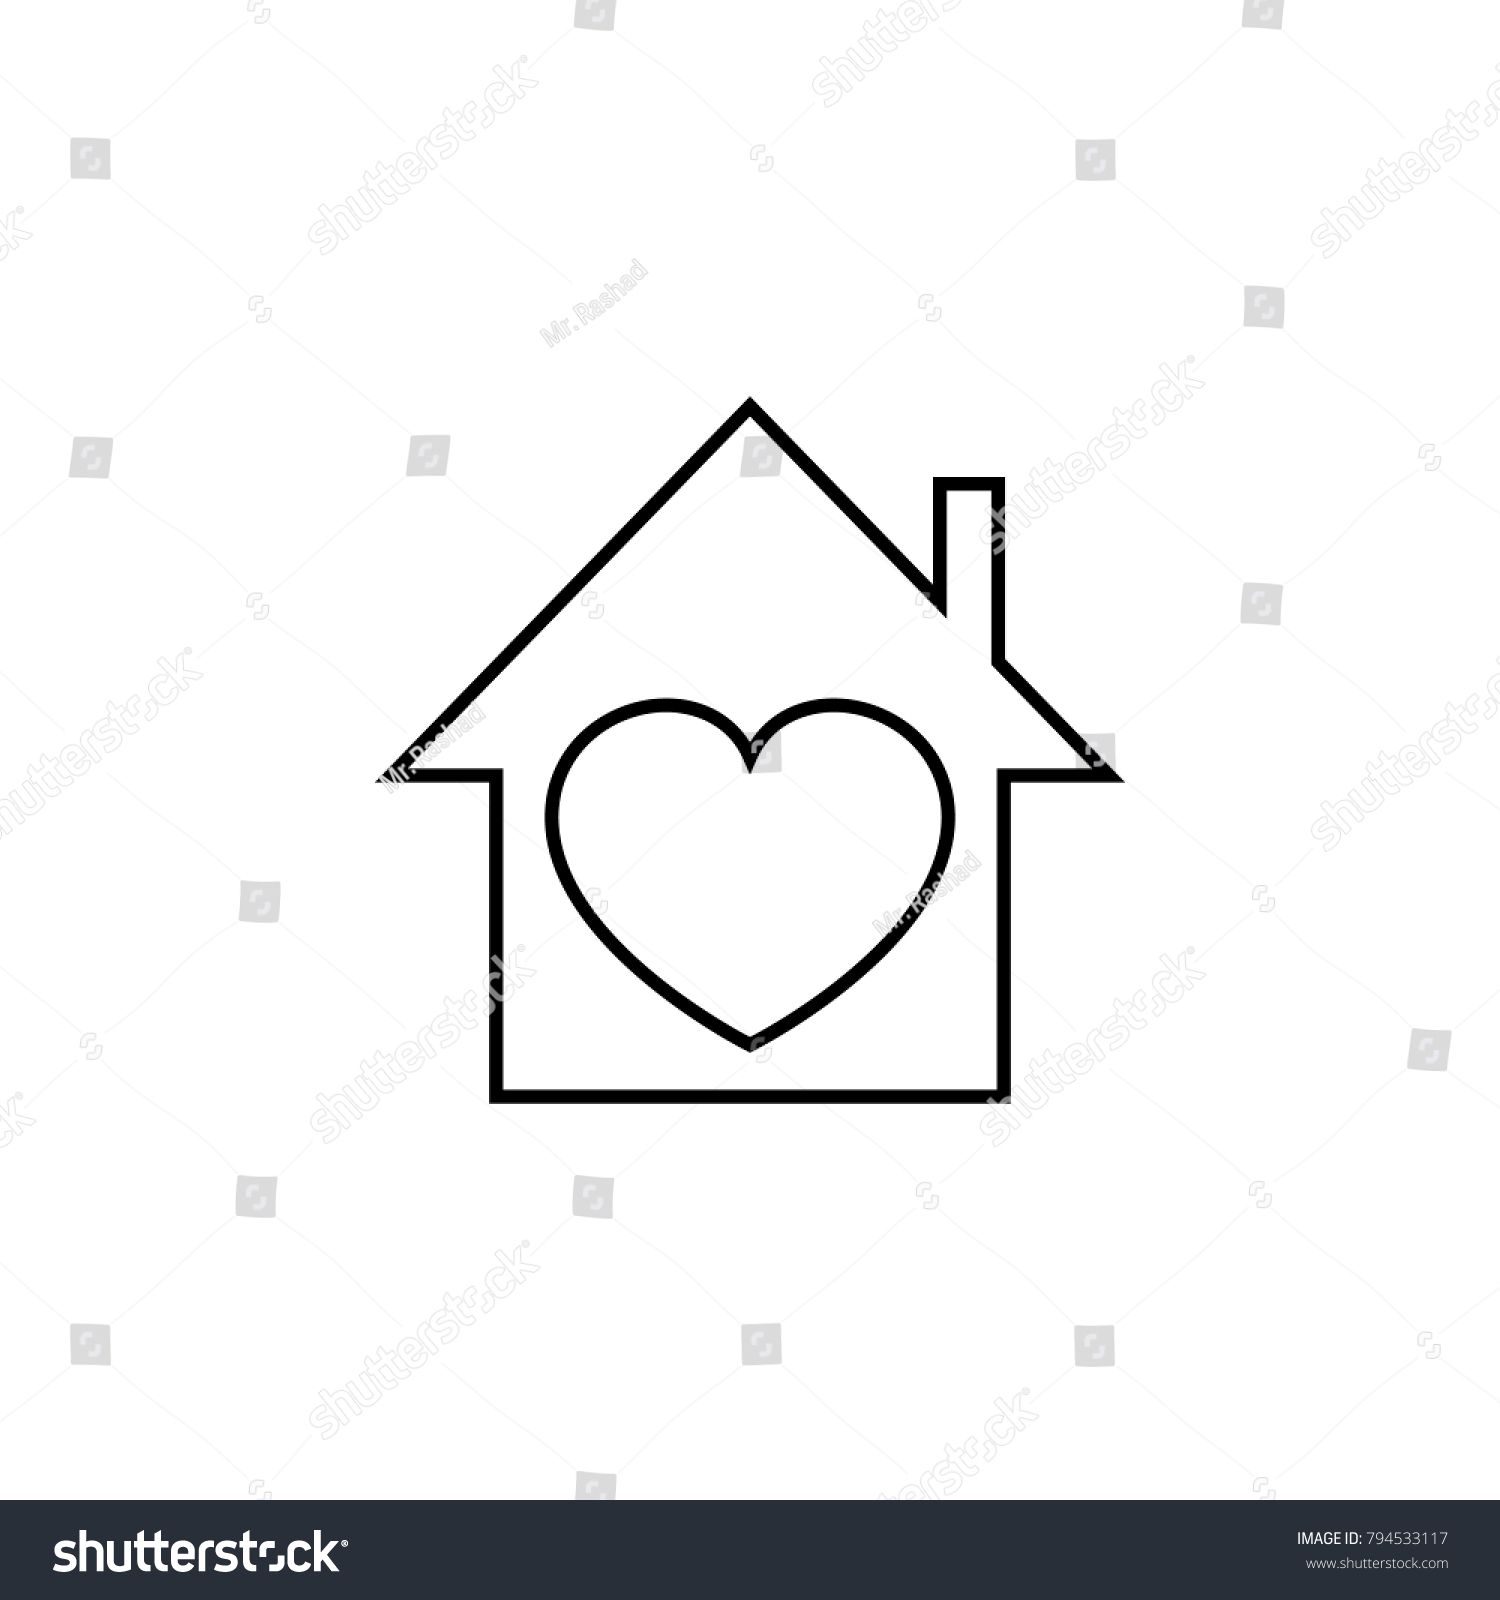 Sensational House Heart Icon Love Valentines Day Stock Vector Royalty Home Remodeling Inspirations Genioncuboardxyz